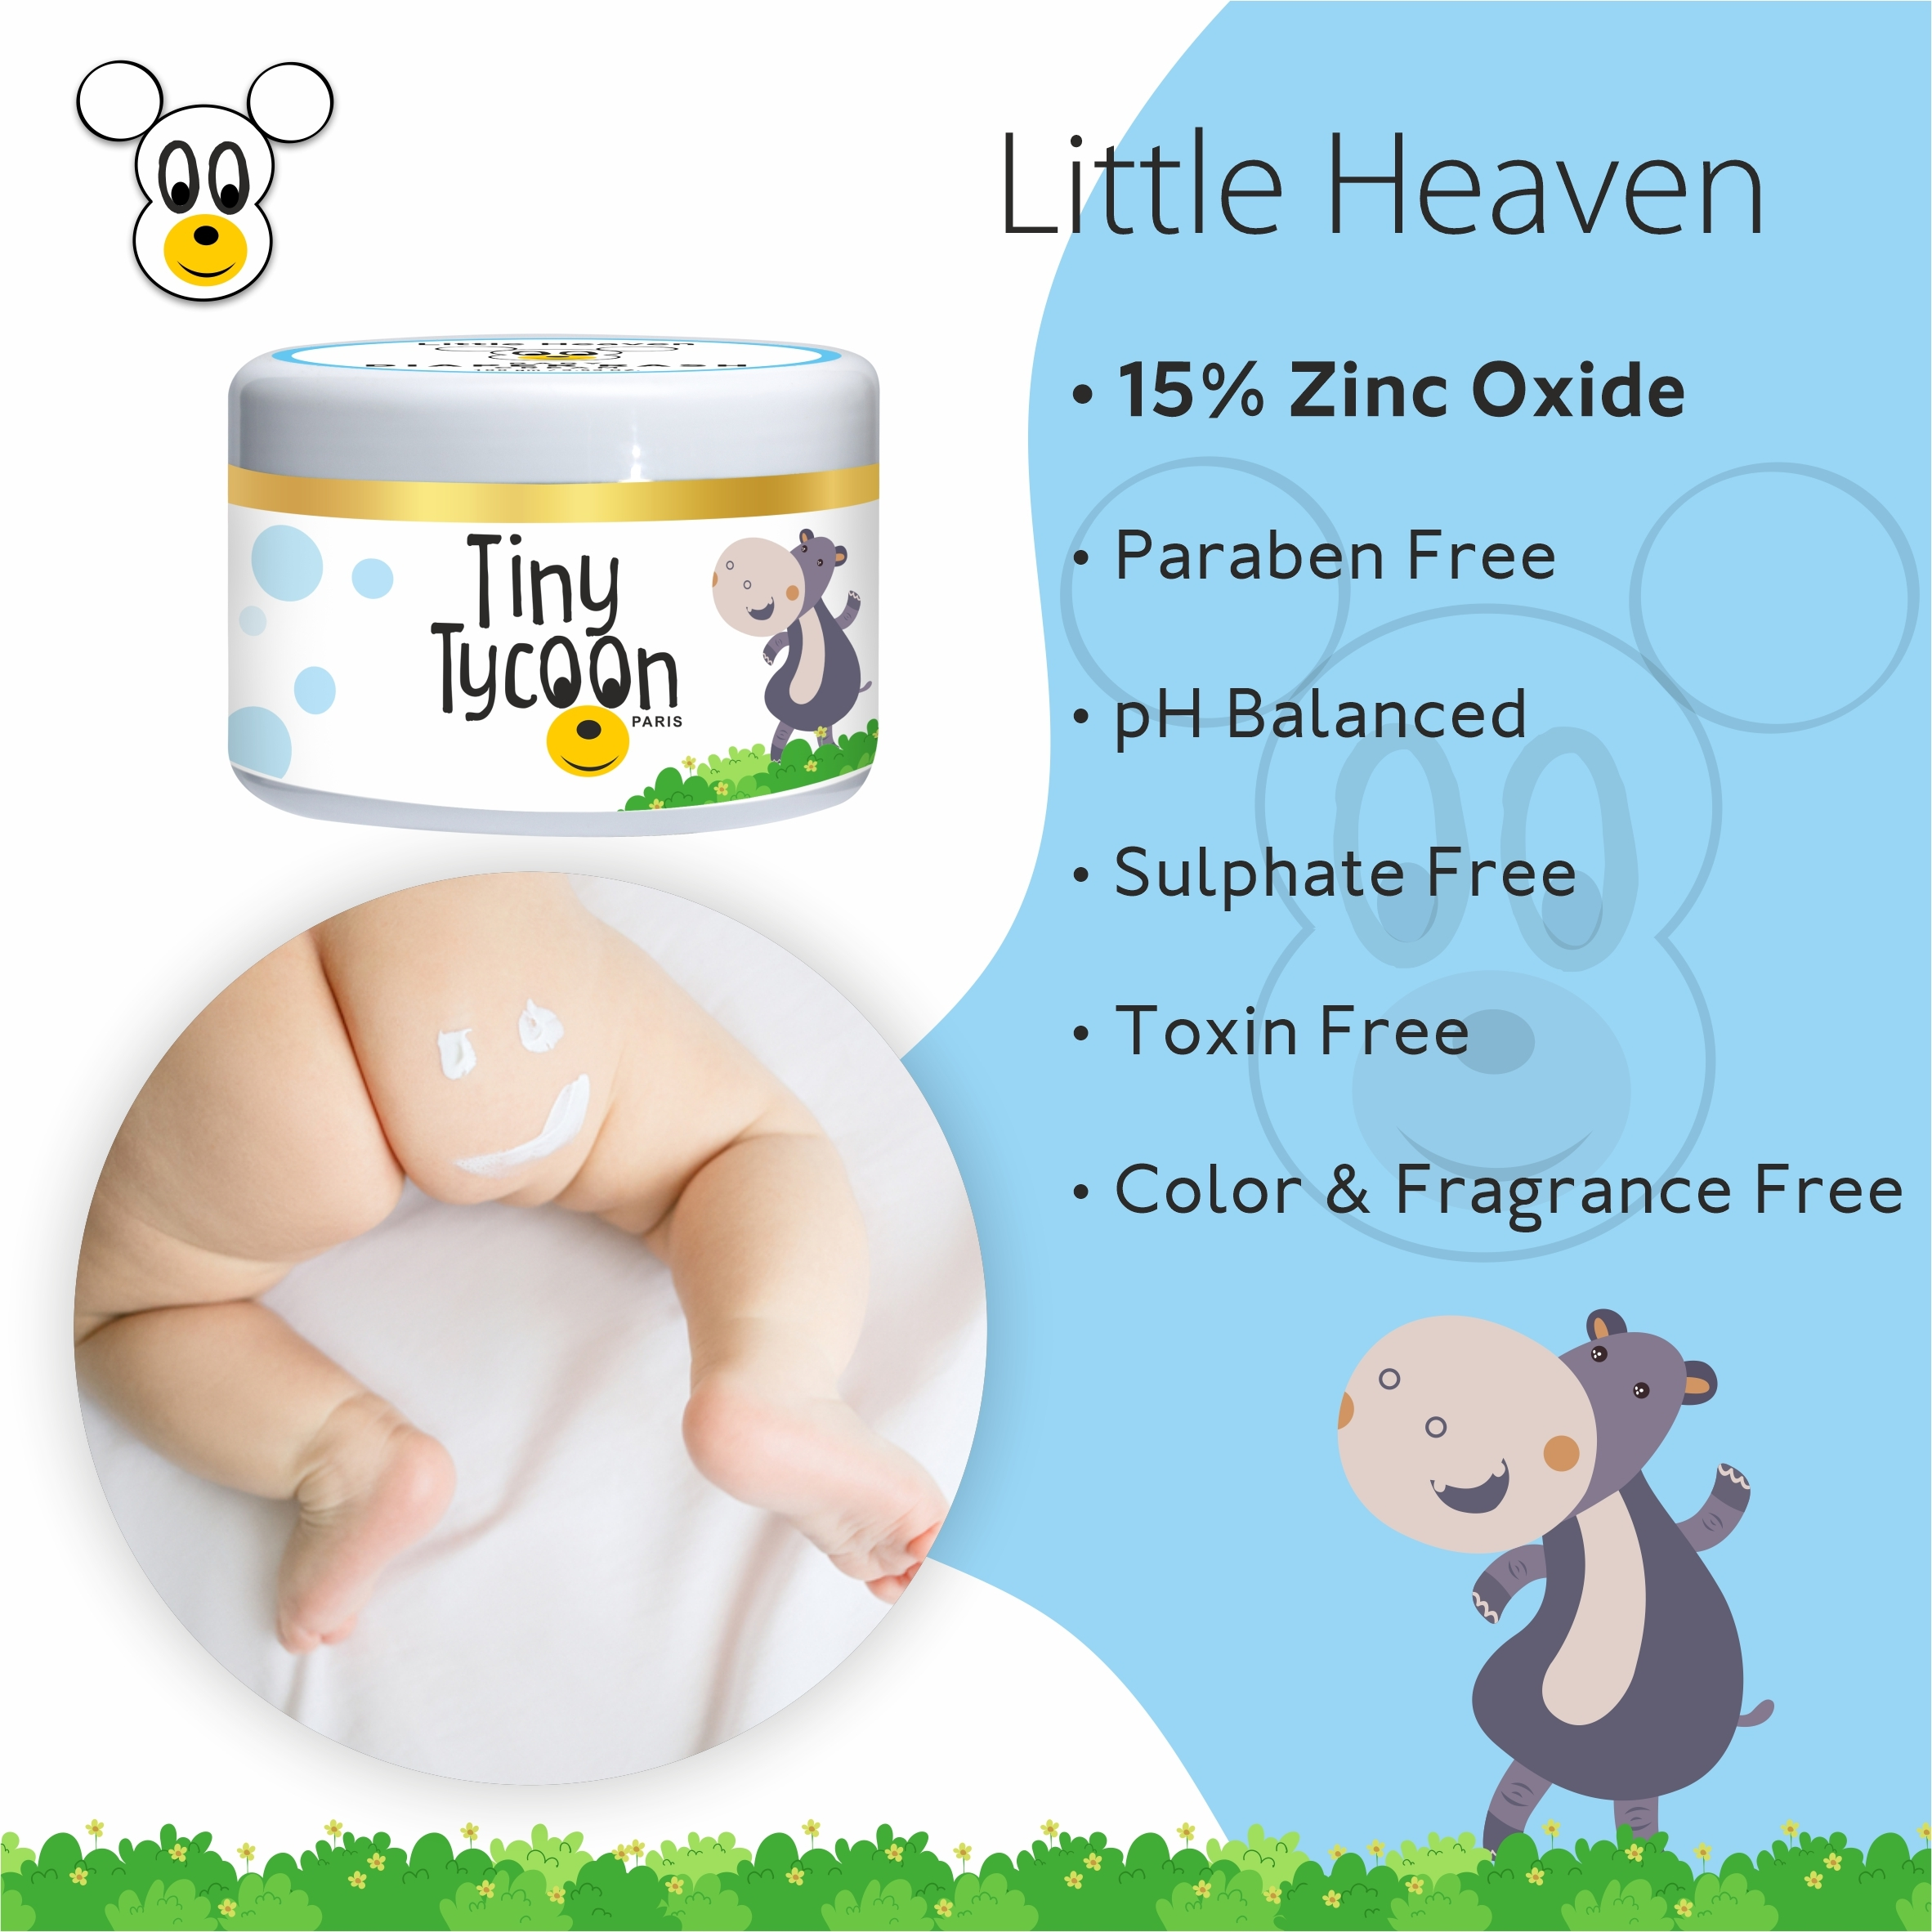 Tiny Tycoon Paris Baby Diaper Rash Cream